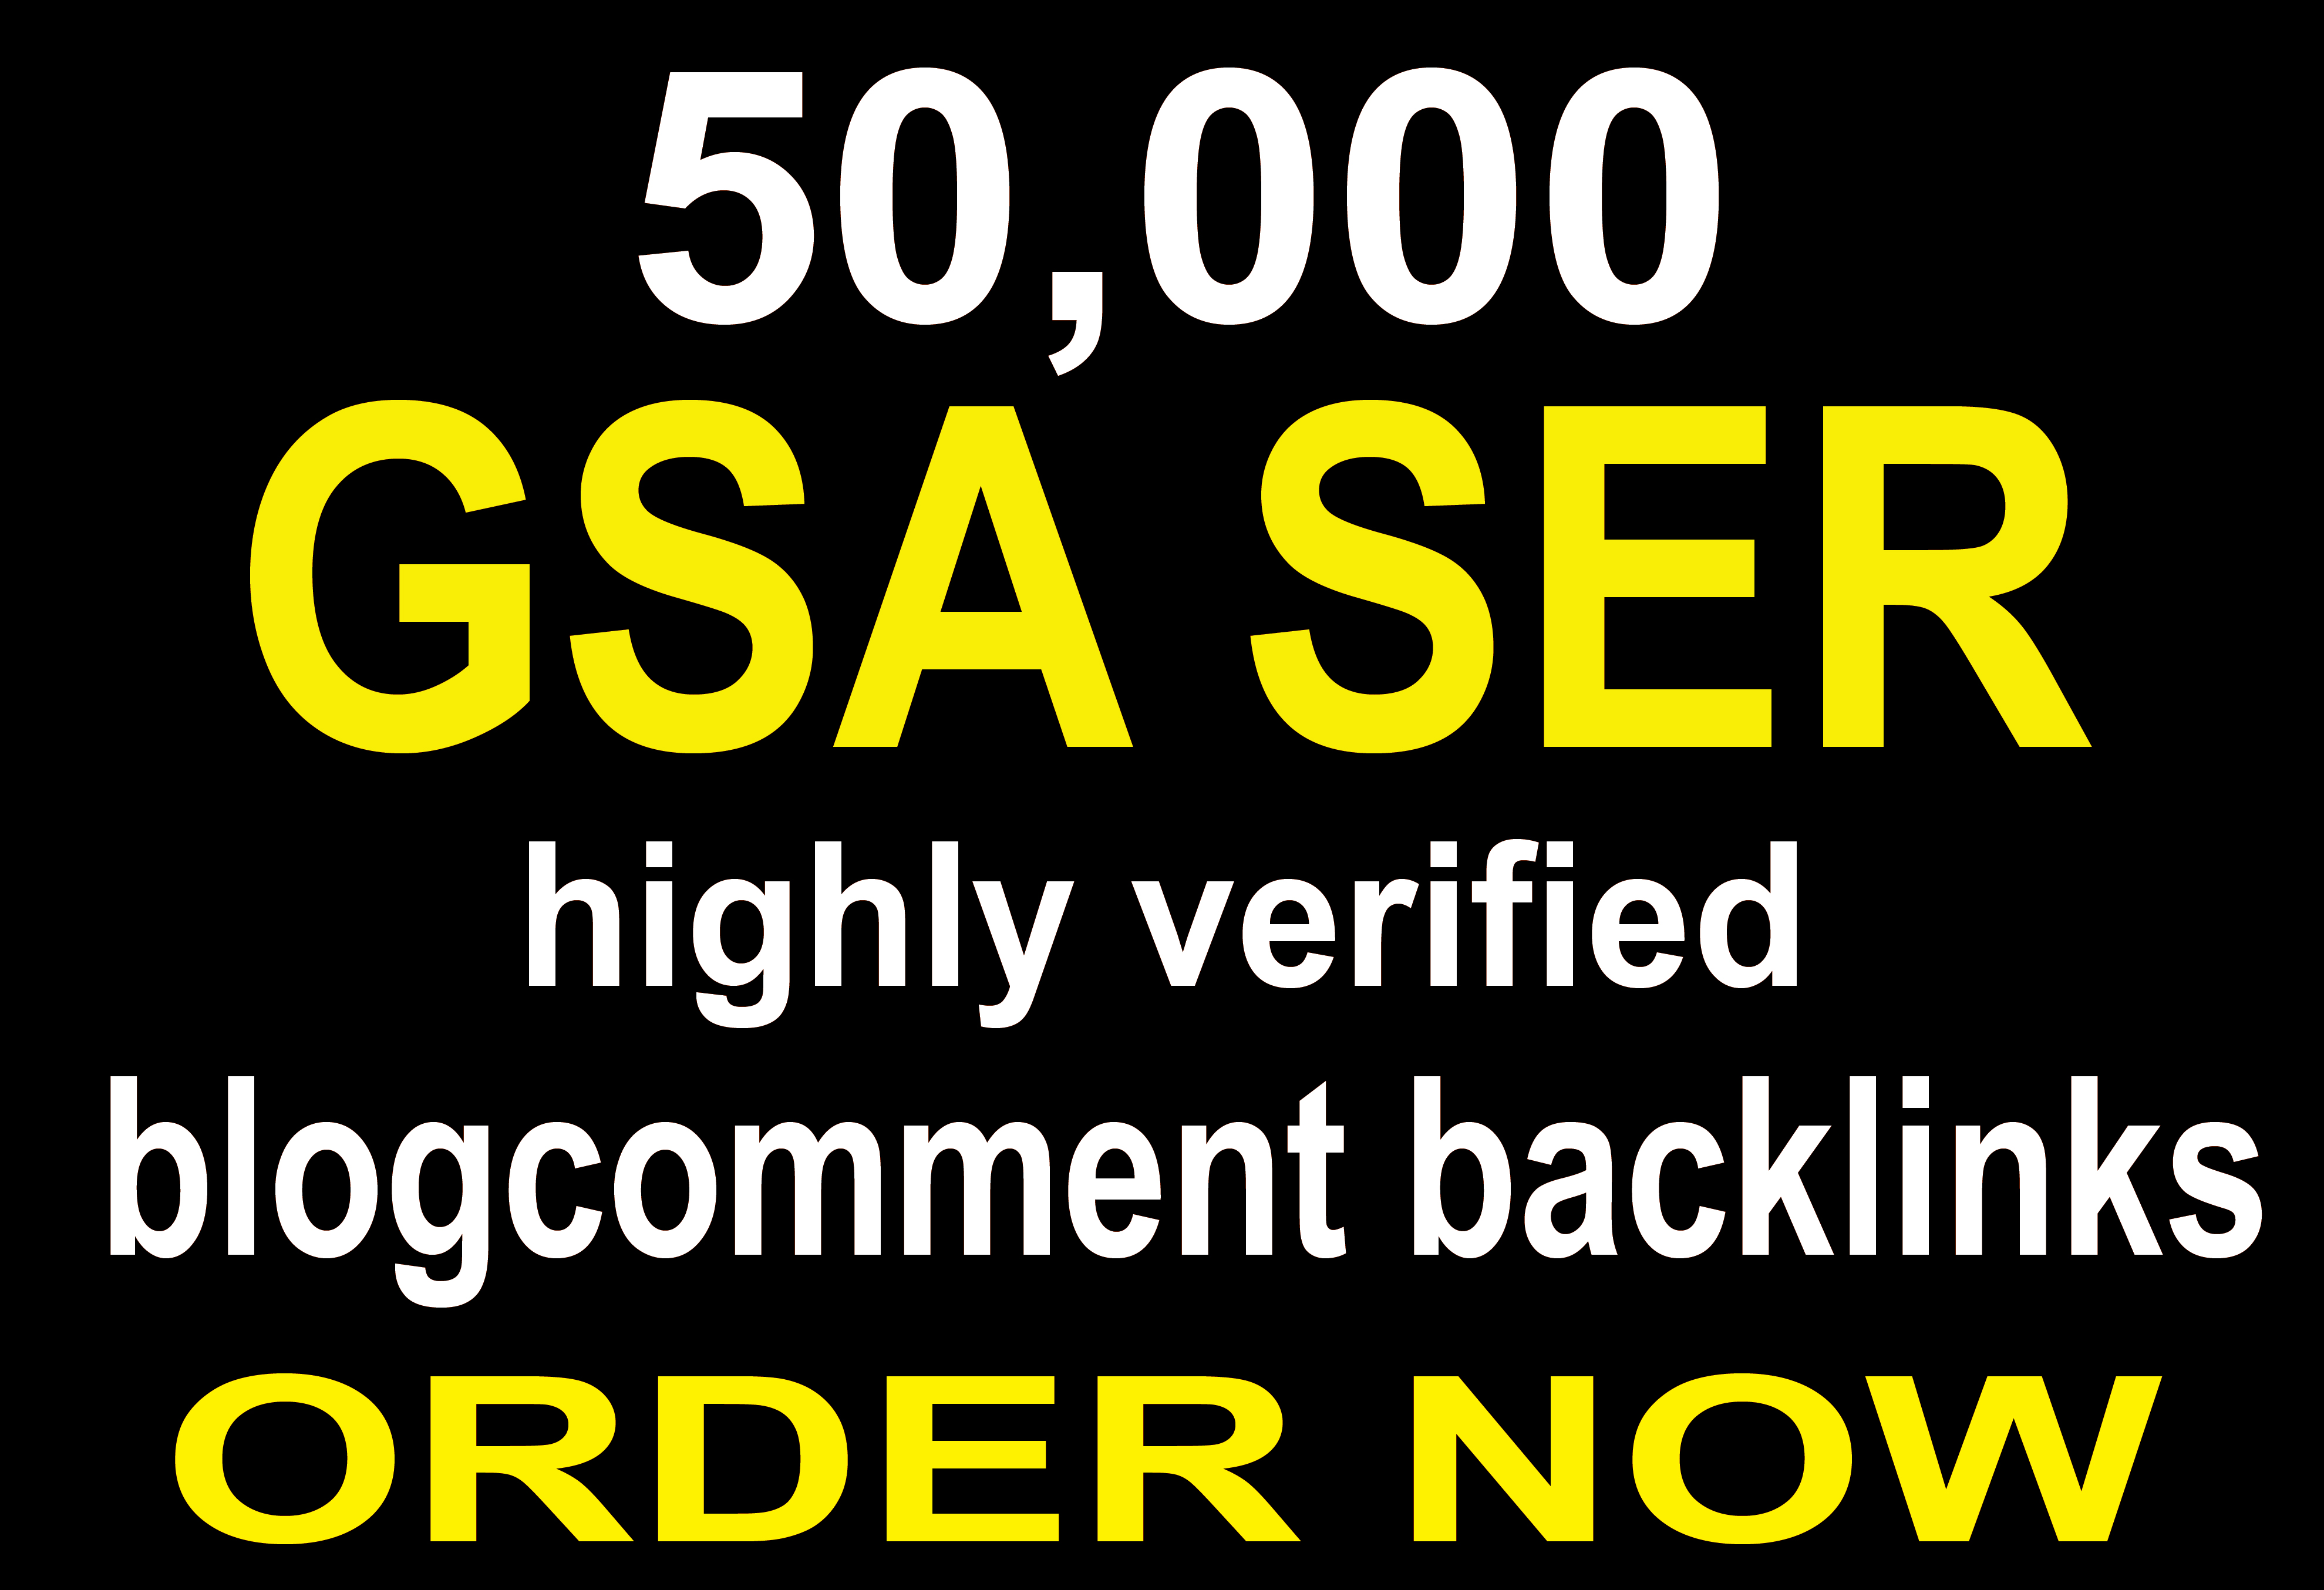 50,000 highly verified blog comment backlinks for your website using gsa